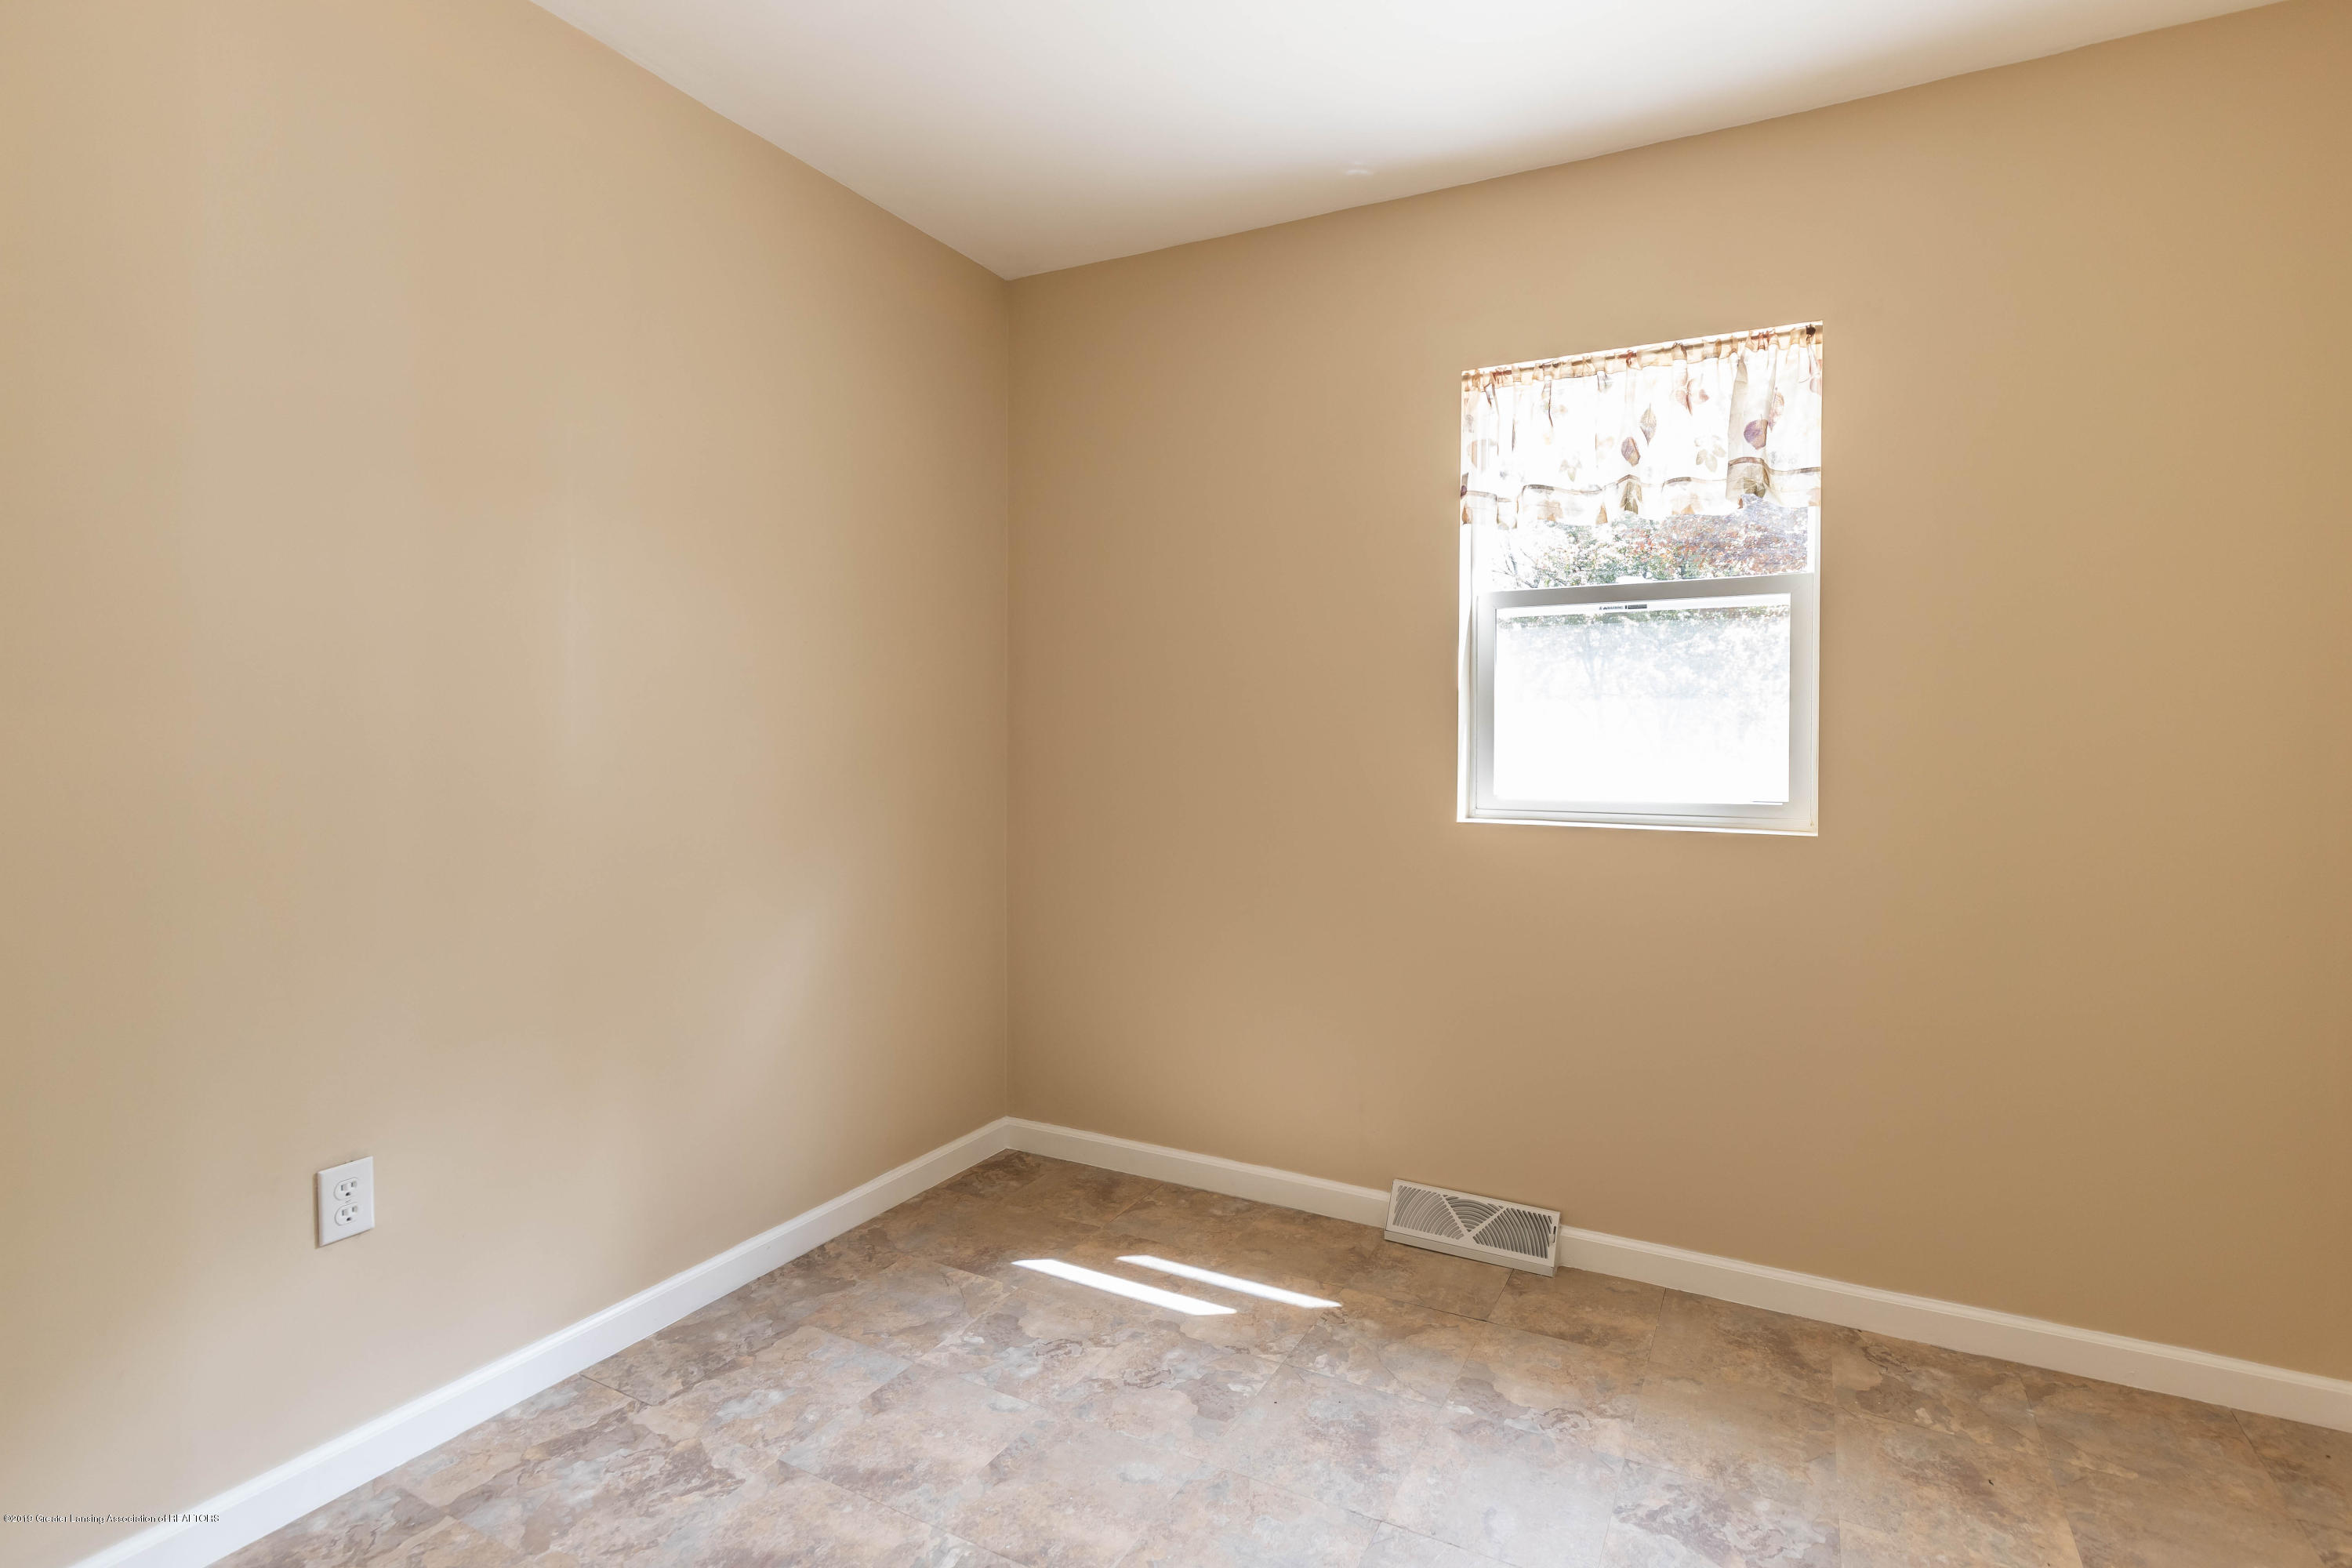 8344 M 21 - Other room - 25